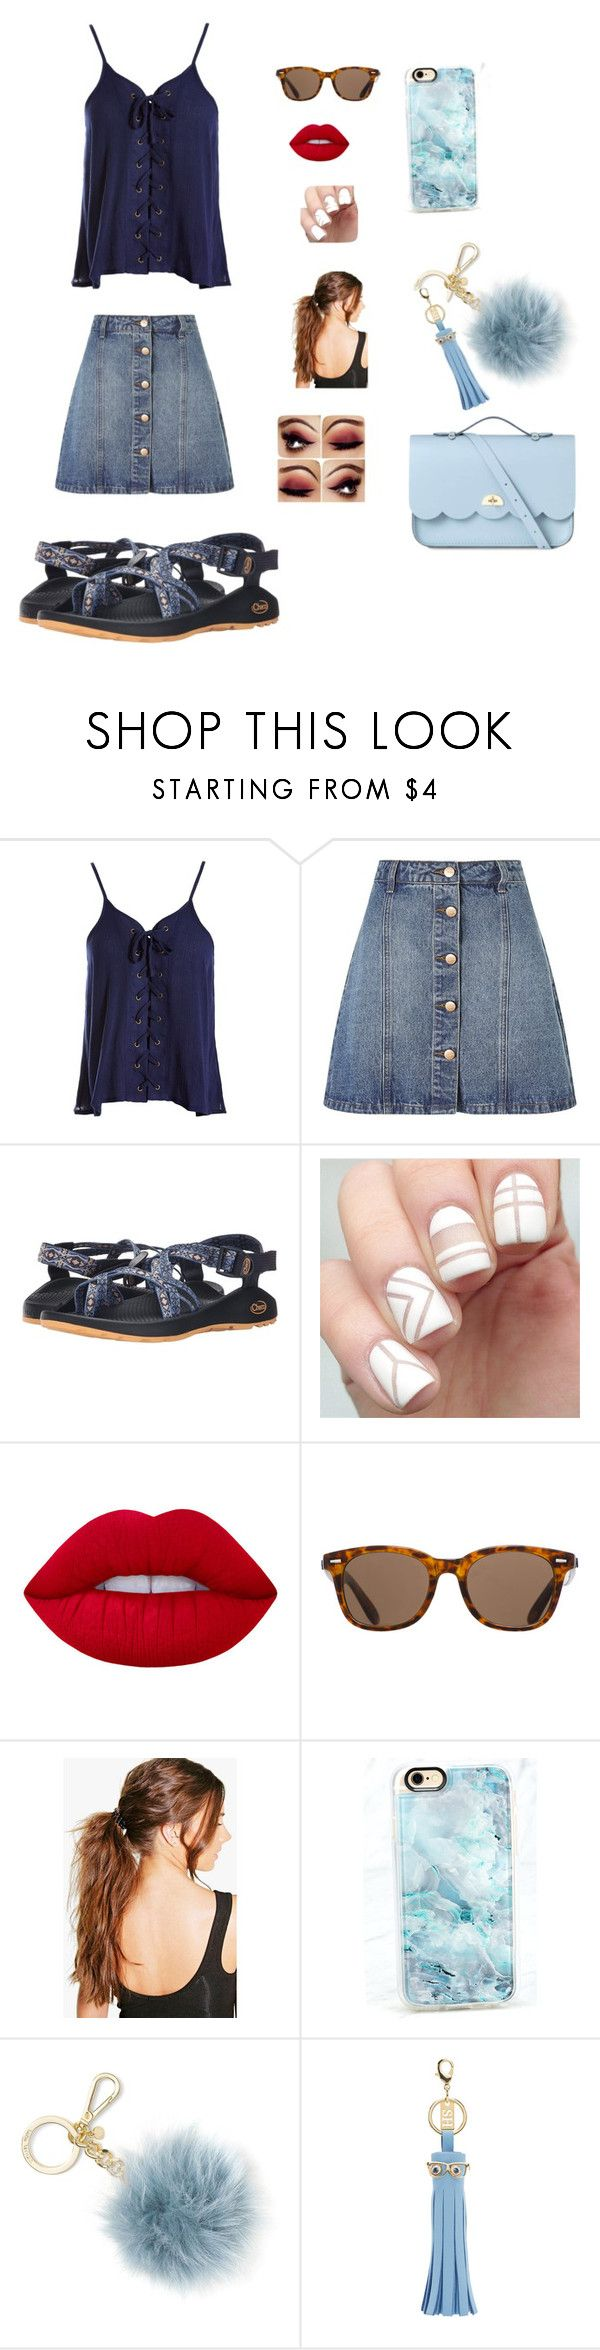 """""""AU Game Day Outfit for Saturday"""" by bethanyhuckabee on Polyvore featuring Sans Souci, Anita & Green, Chaco, Lime Crime, ToyShades, Boohoo, Casetify, Michael Kors, Sophie Hulme and The Cambridge Satchel Company"""